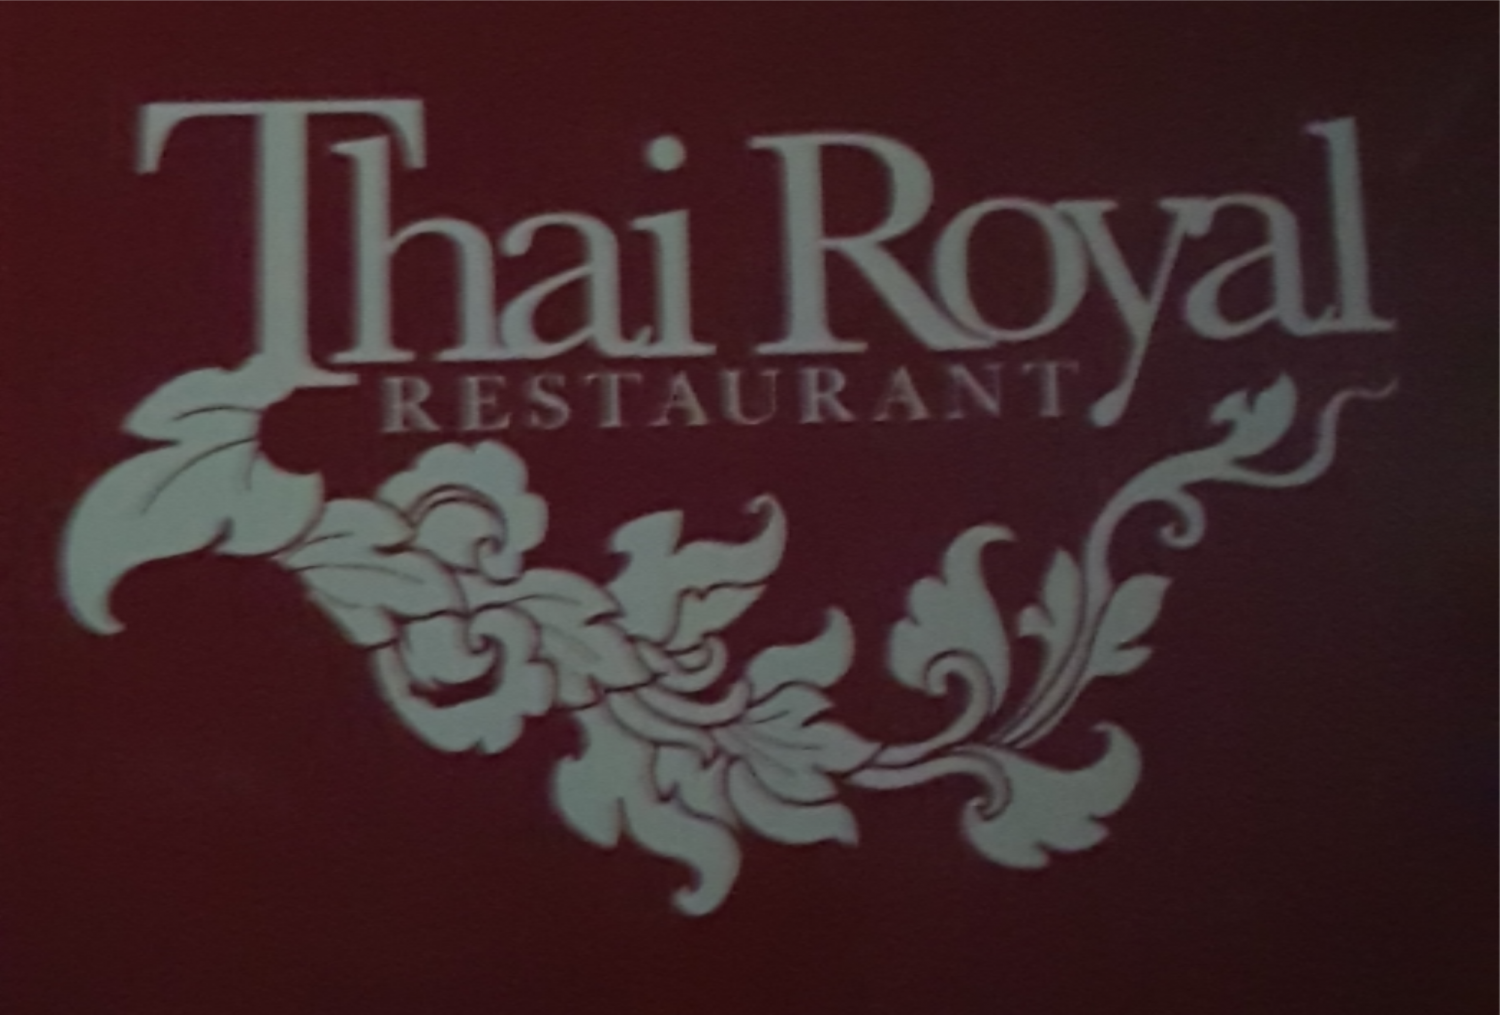 Thai Royal Restaurant Matamata